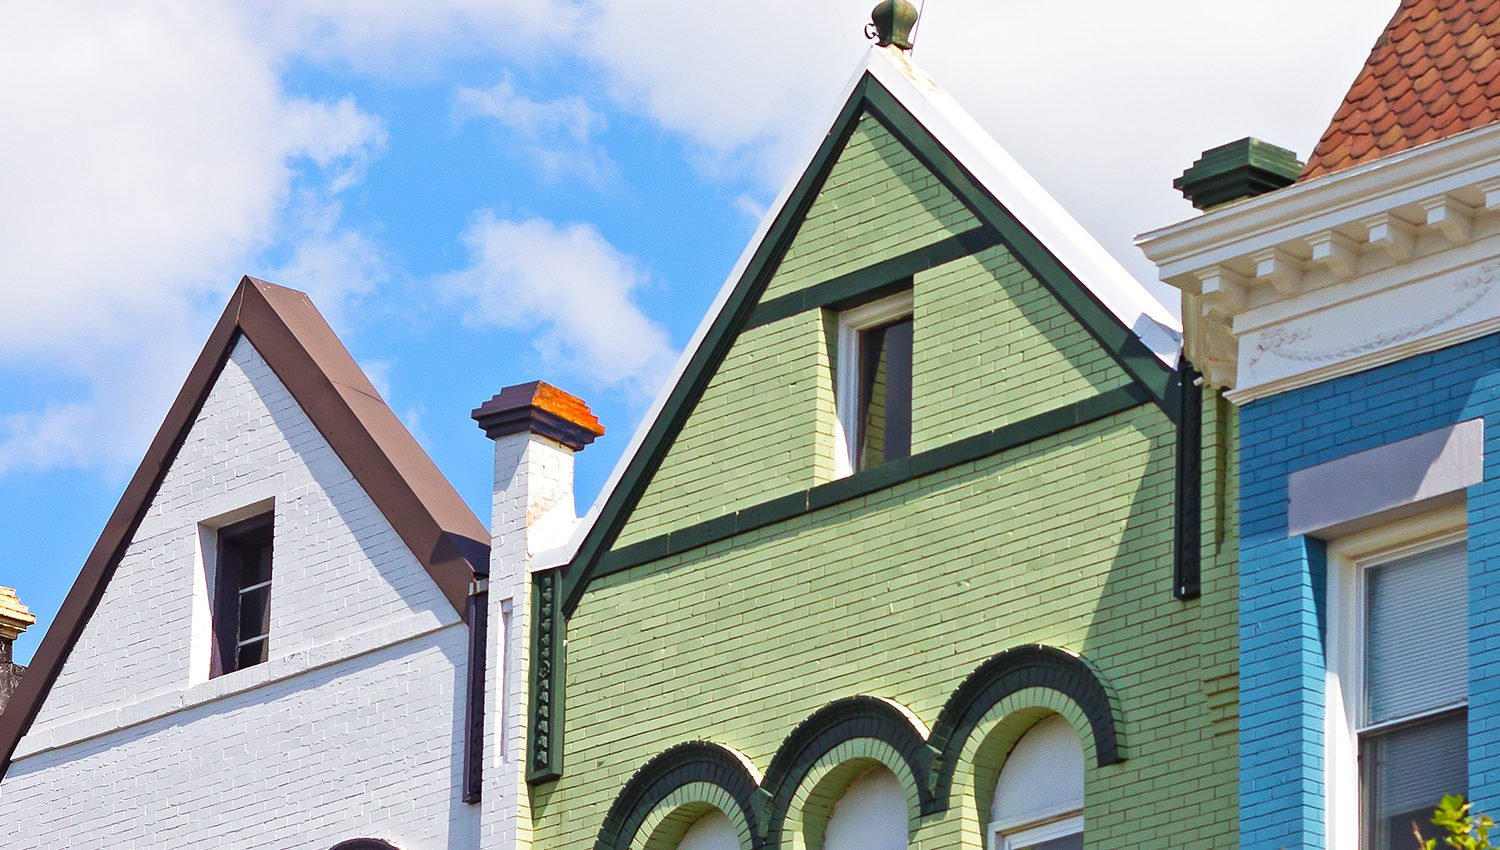 DC Neighborhood Guide: DC Rowhouses. DC Neighborhoods. Photograph via iStock.